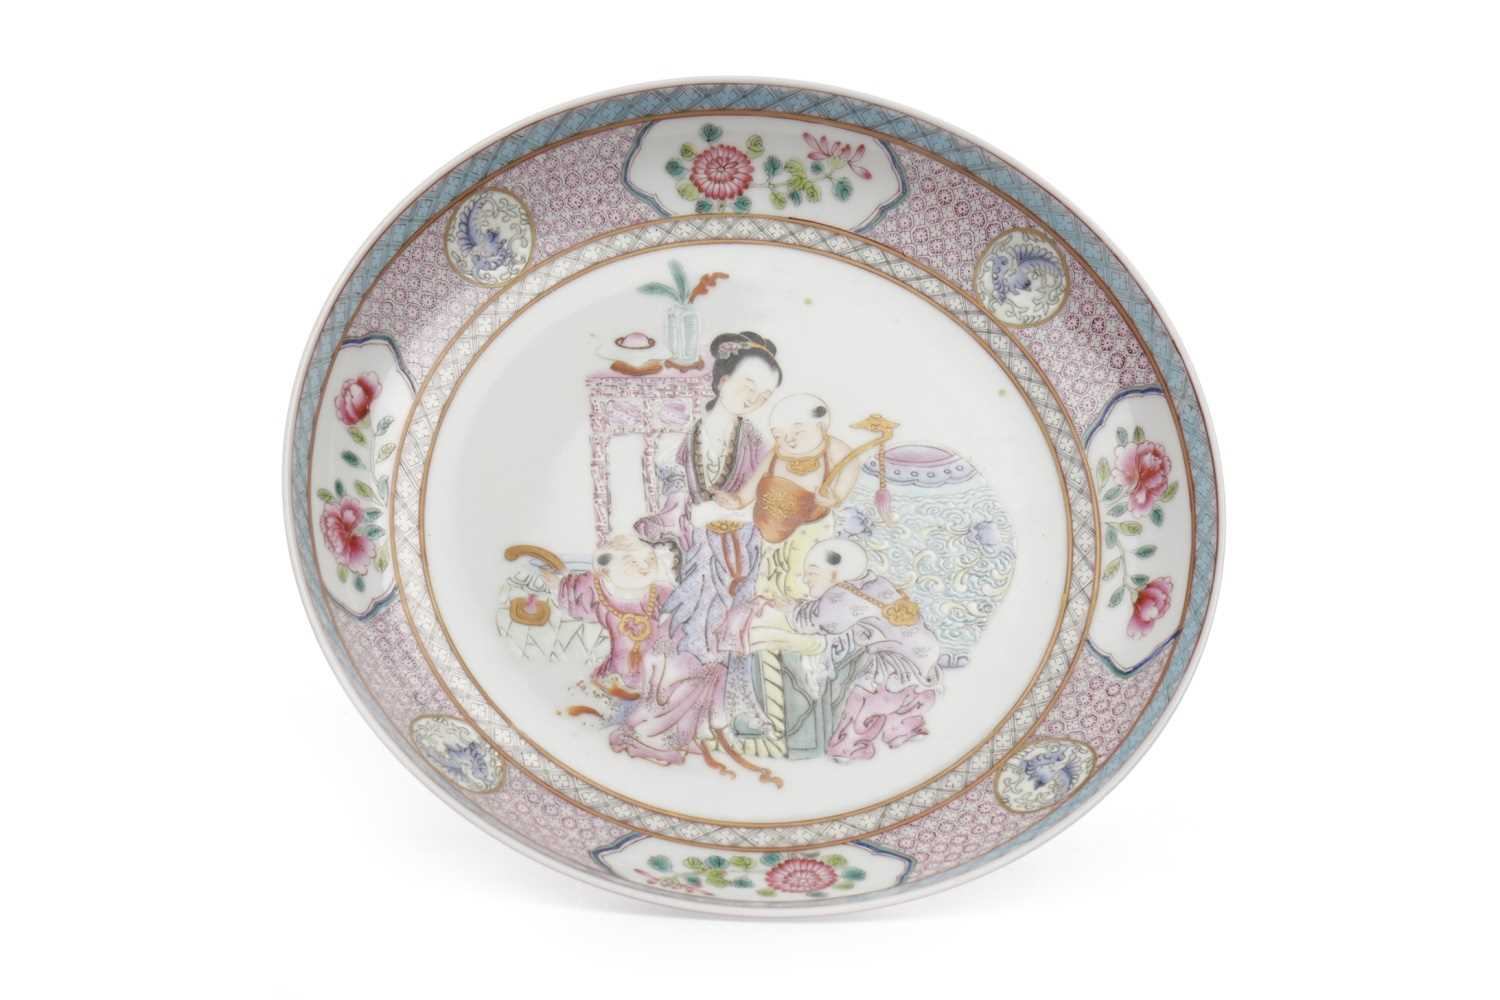 Lot 1164-AN EARLY 20TH CENTURY CHINESE FAMILLE ROSE PLATE